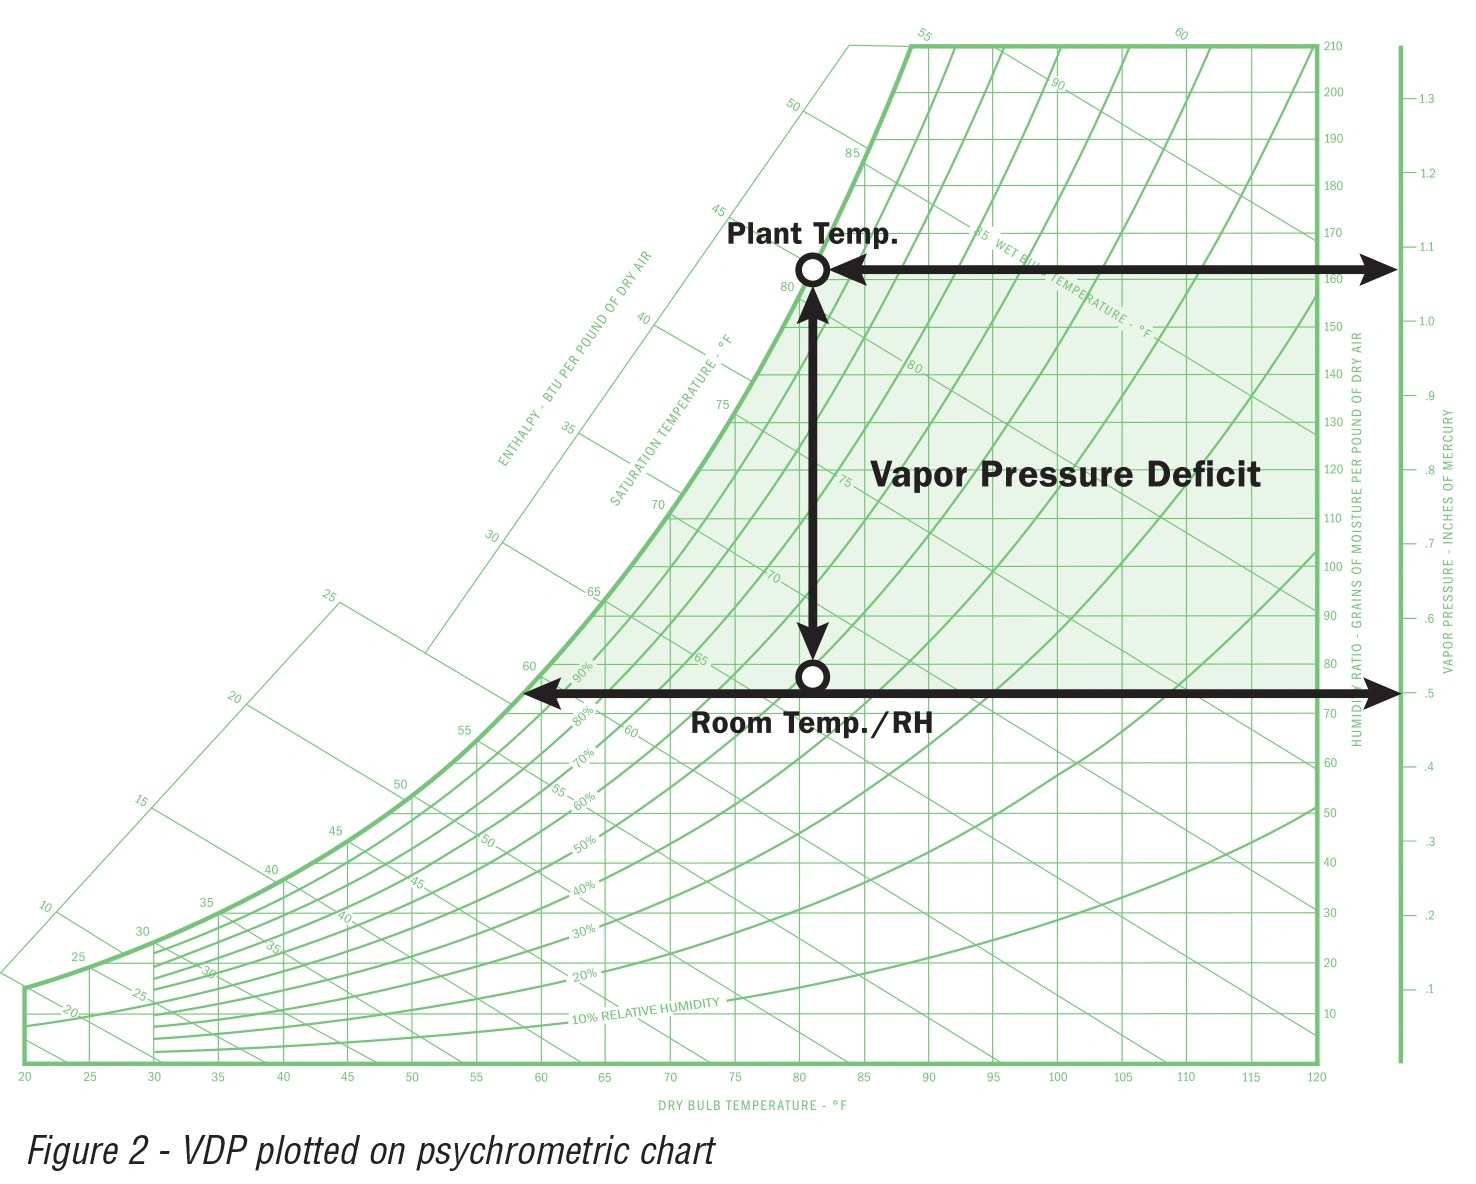 hight resolution of vapor pressure deficit can be demonstrated on a psychrometric chart the example below demonstrates the change in the vapor pressure at a fixed temperature